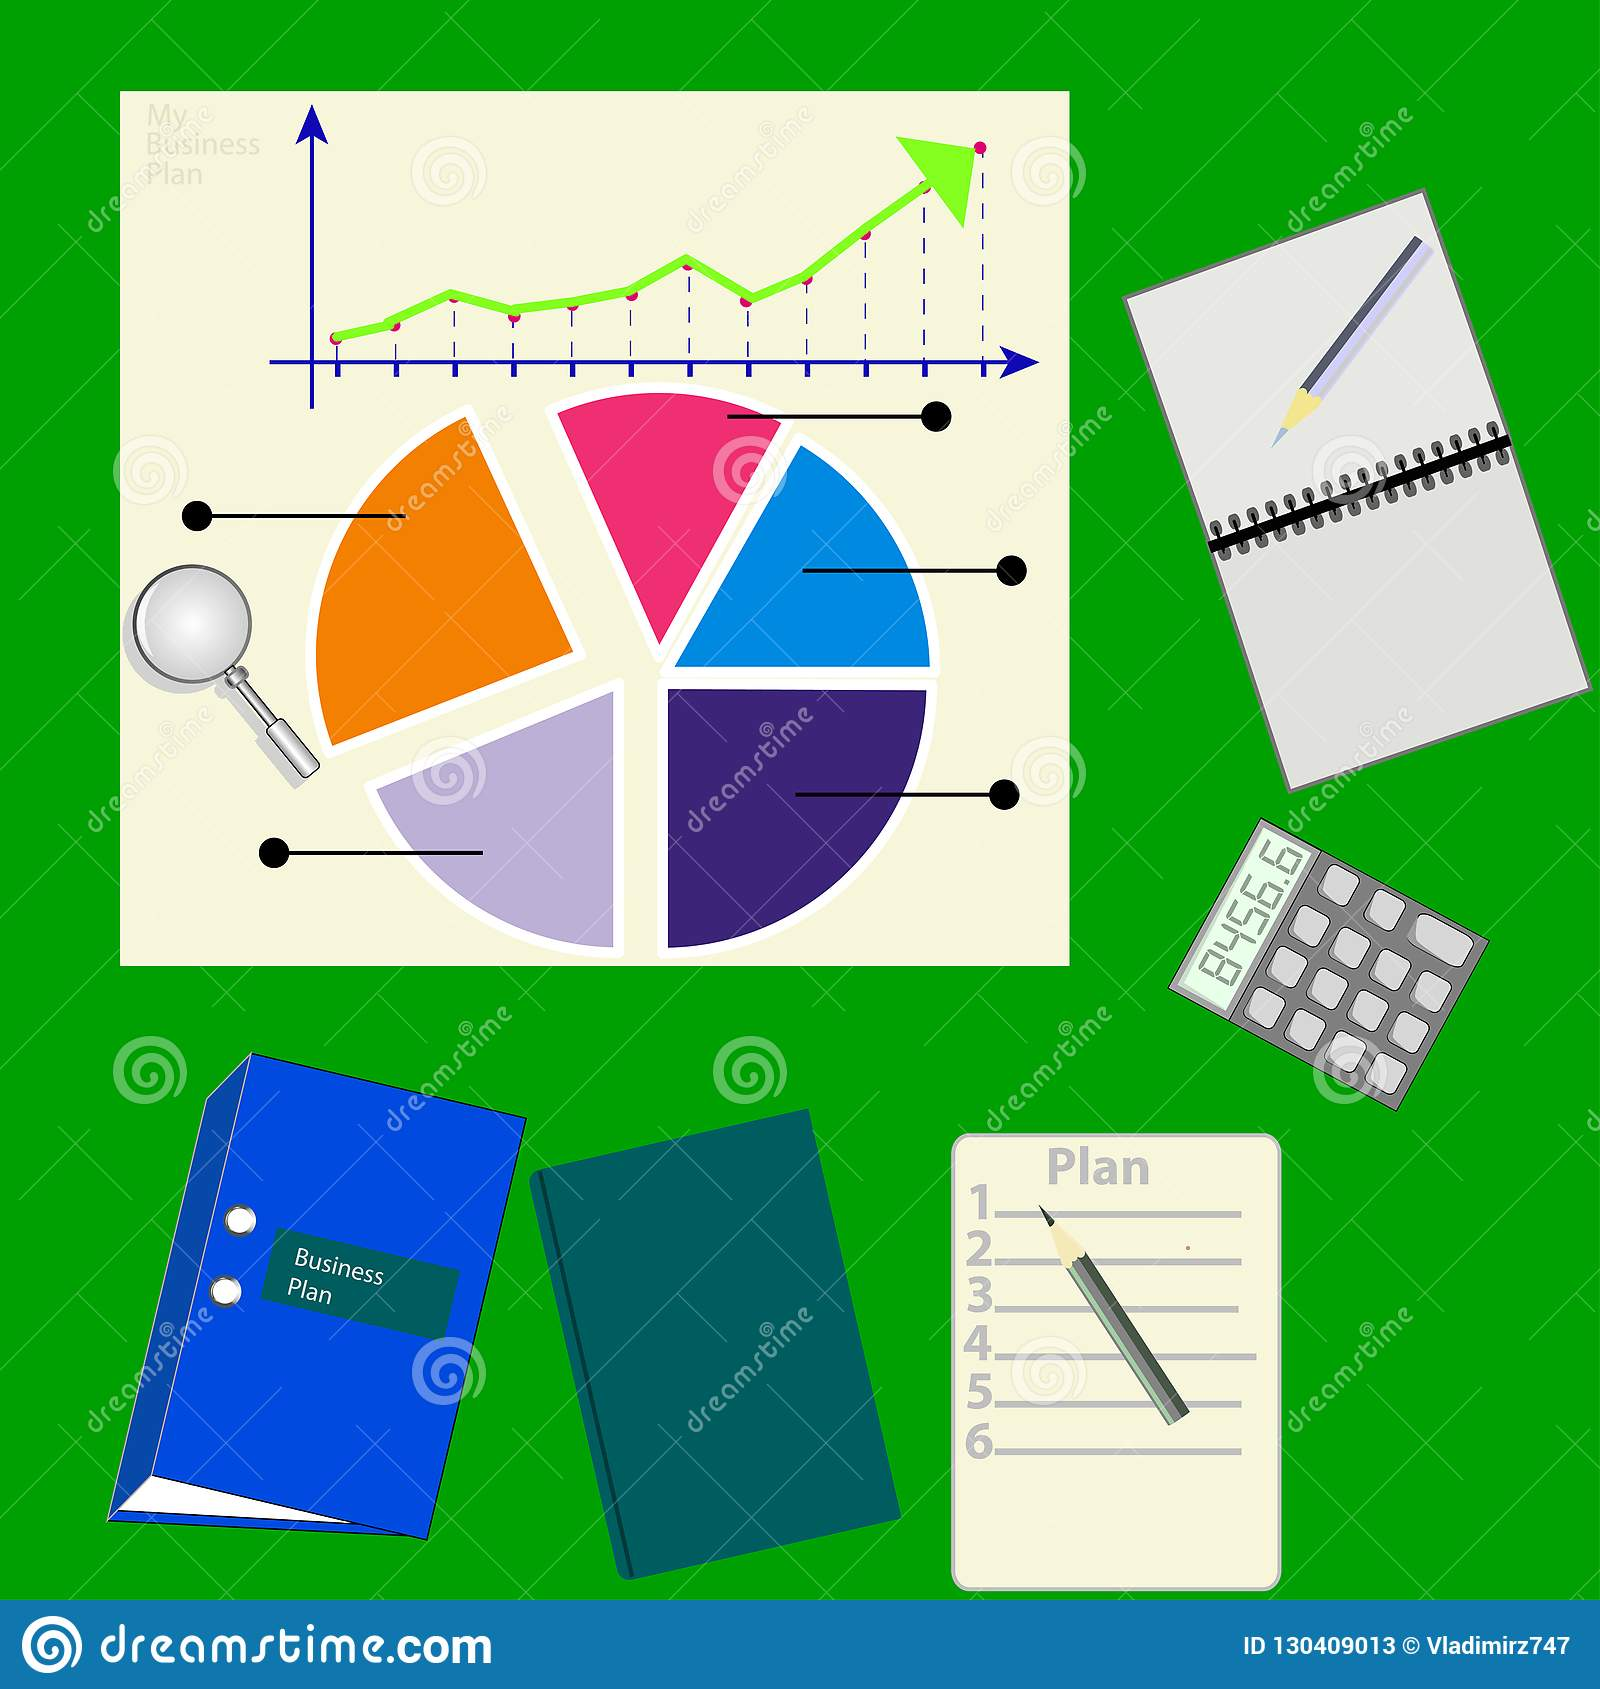 business plan image concept with documents diagram graph stock